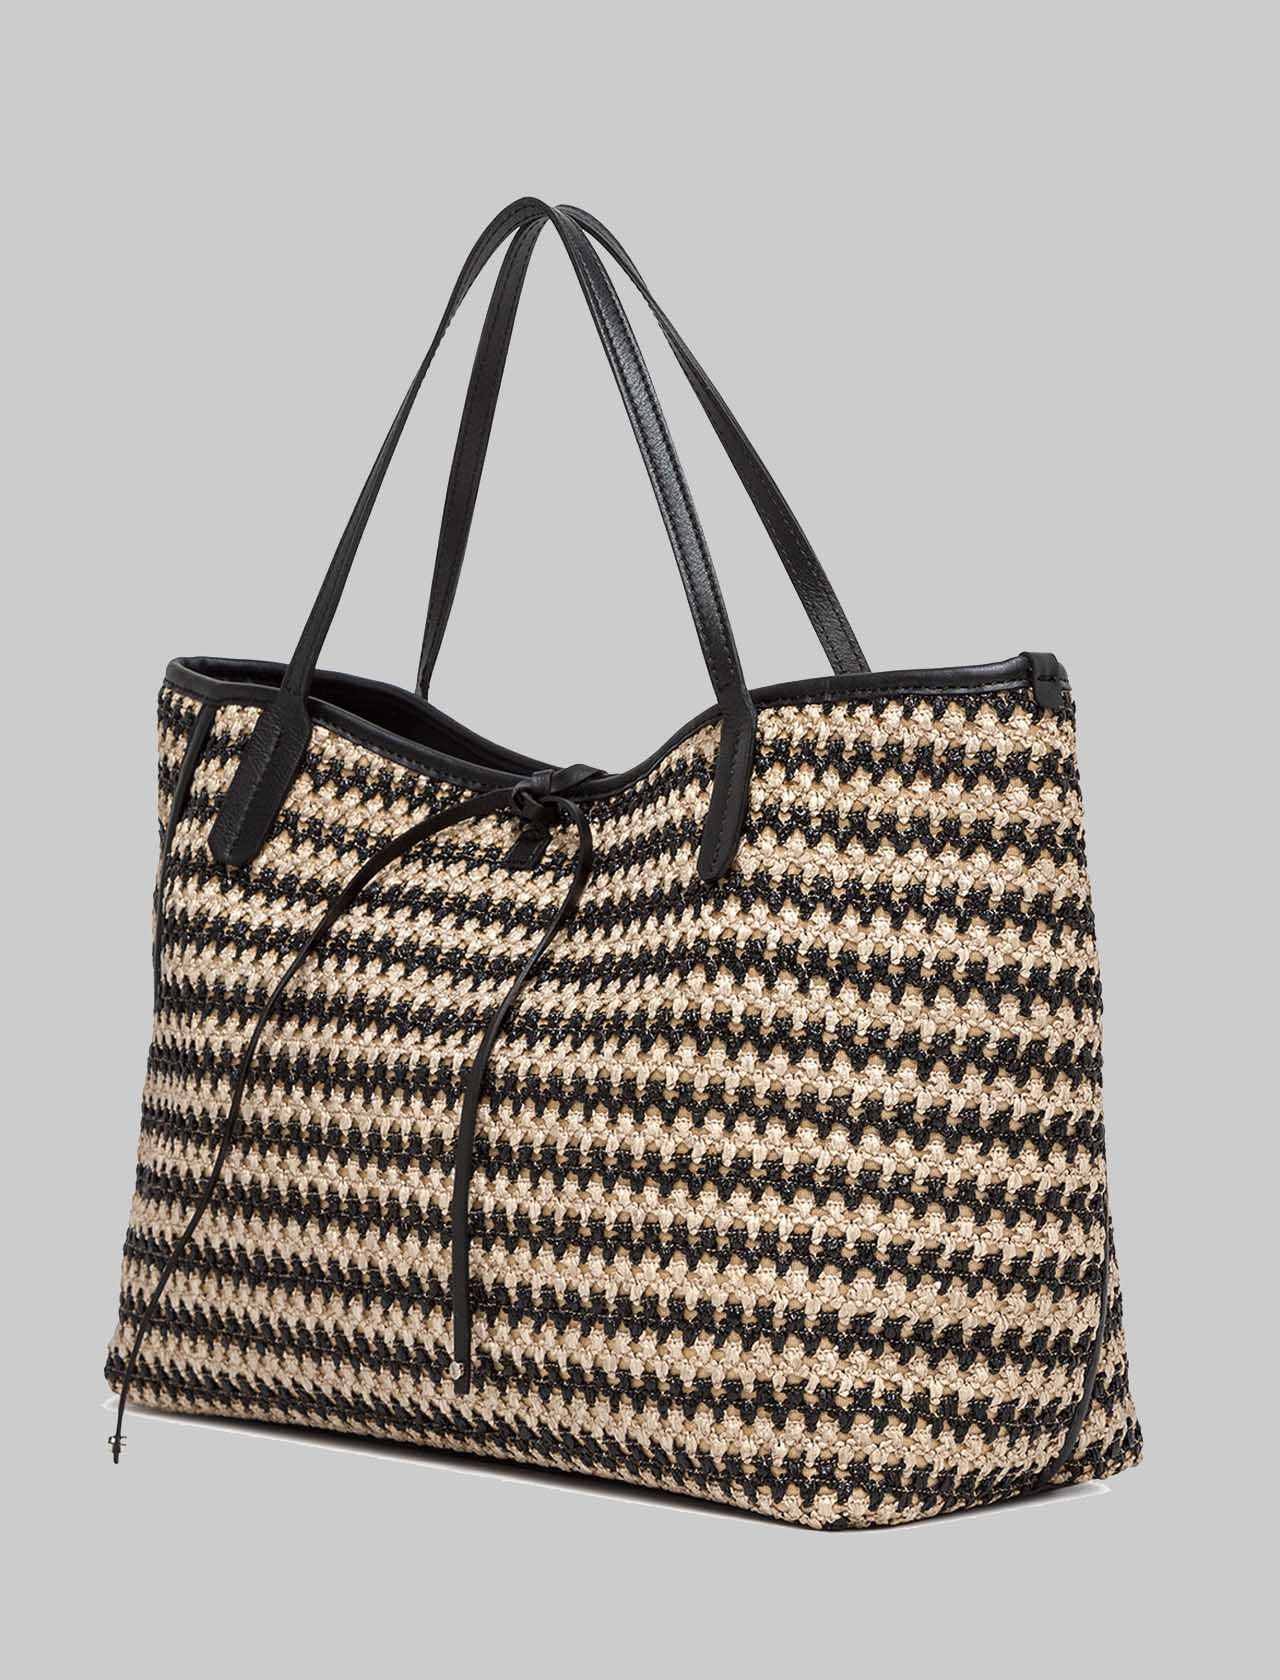 Ray woman shoulder bag in two-tone woven raffia with black leather inserts Gianni Chiarini | Bags and backpacks | BS835111819